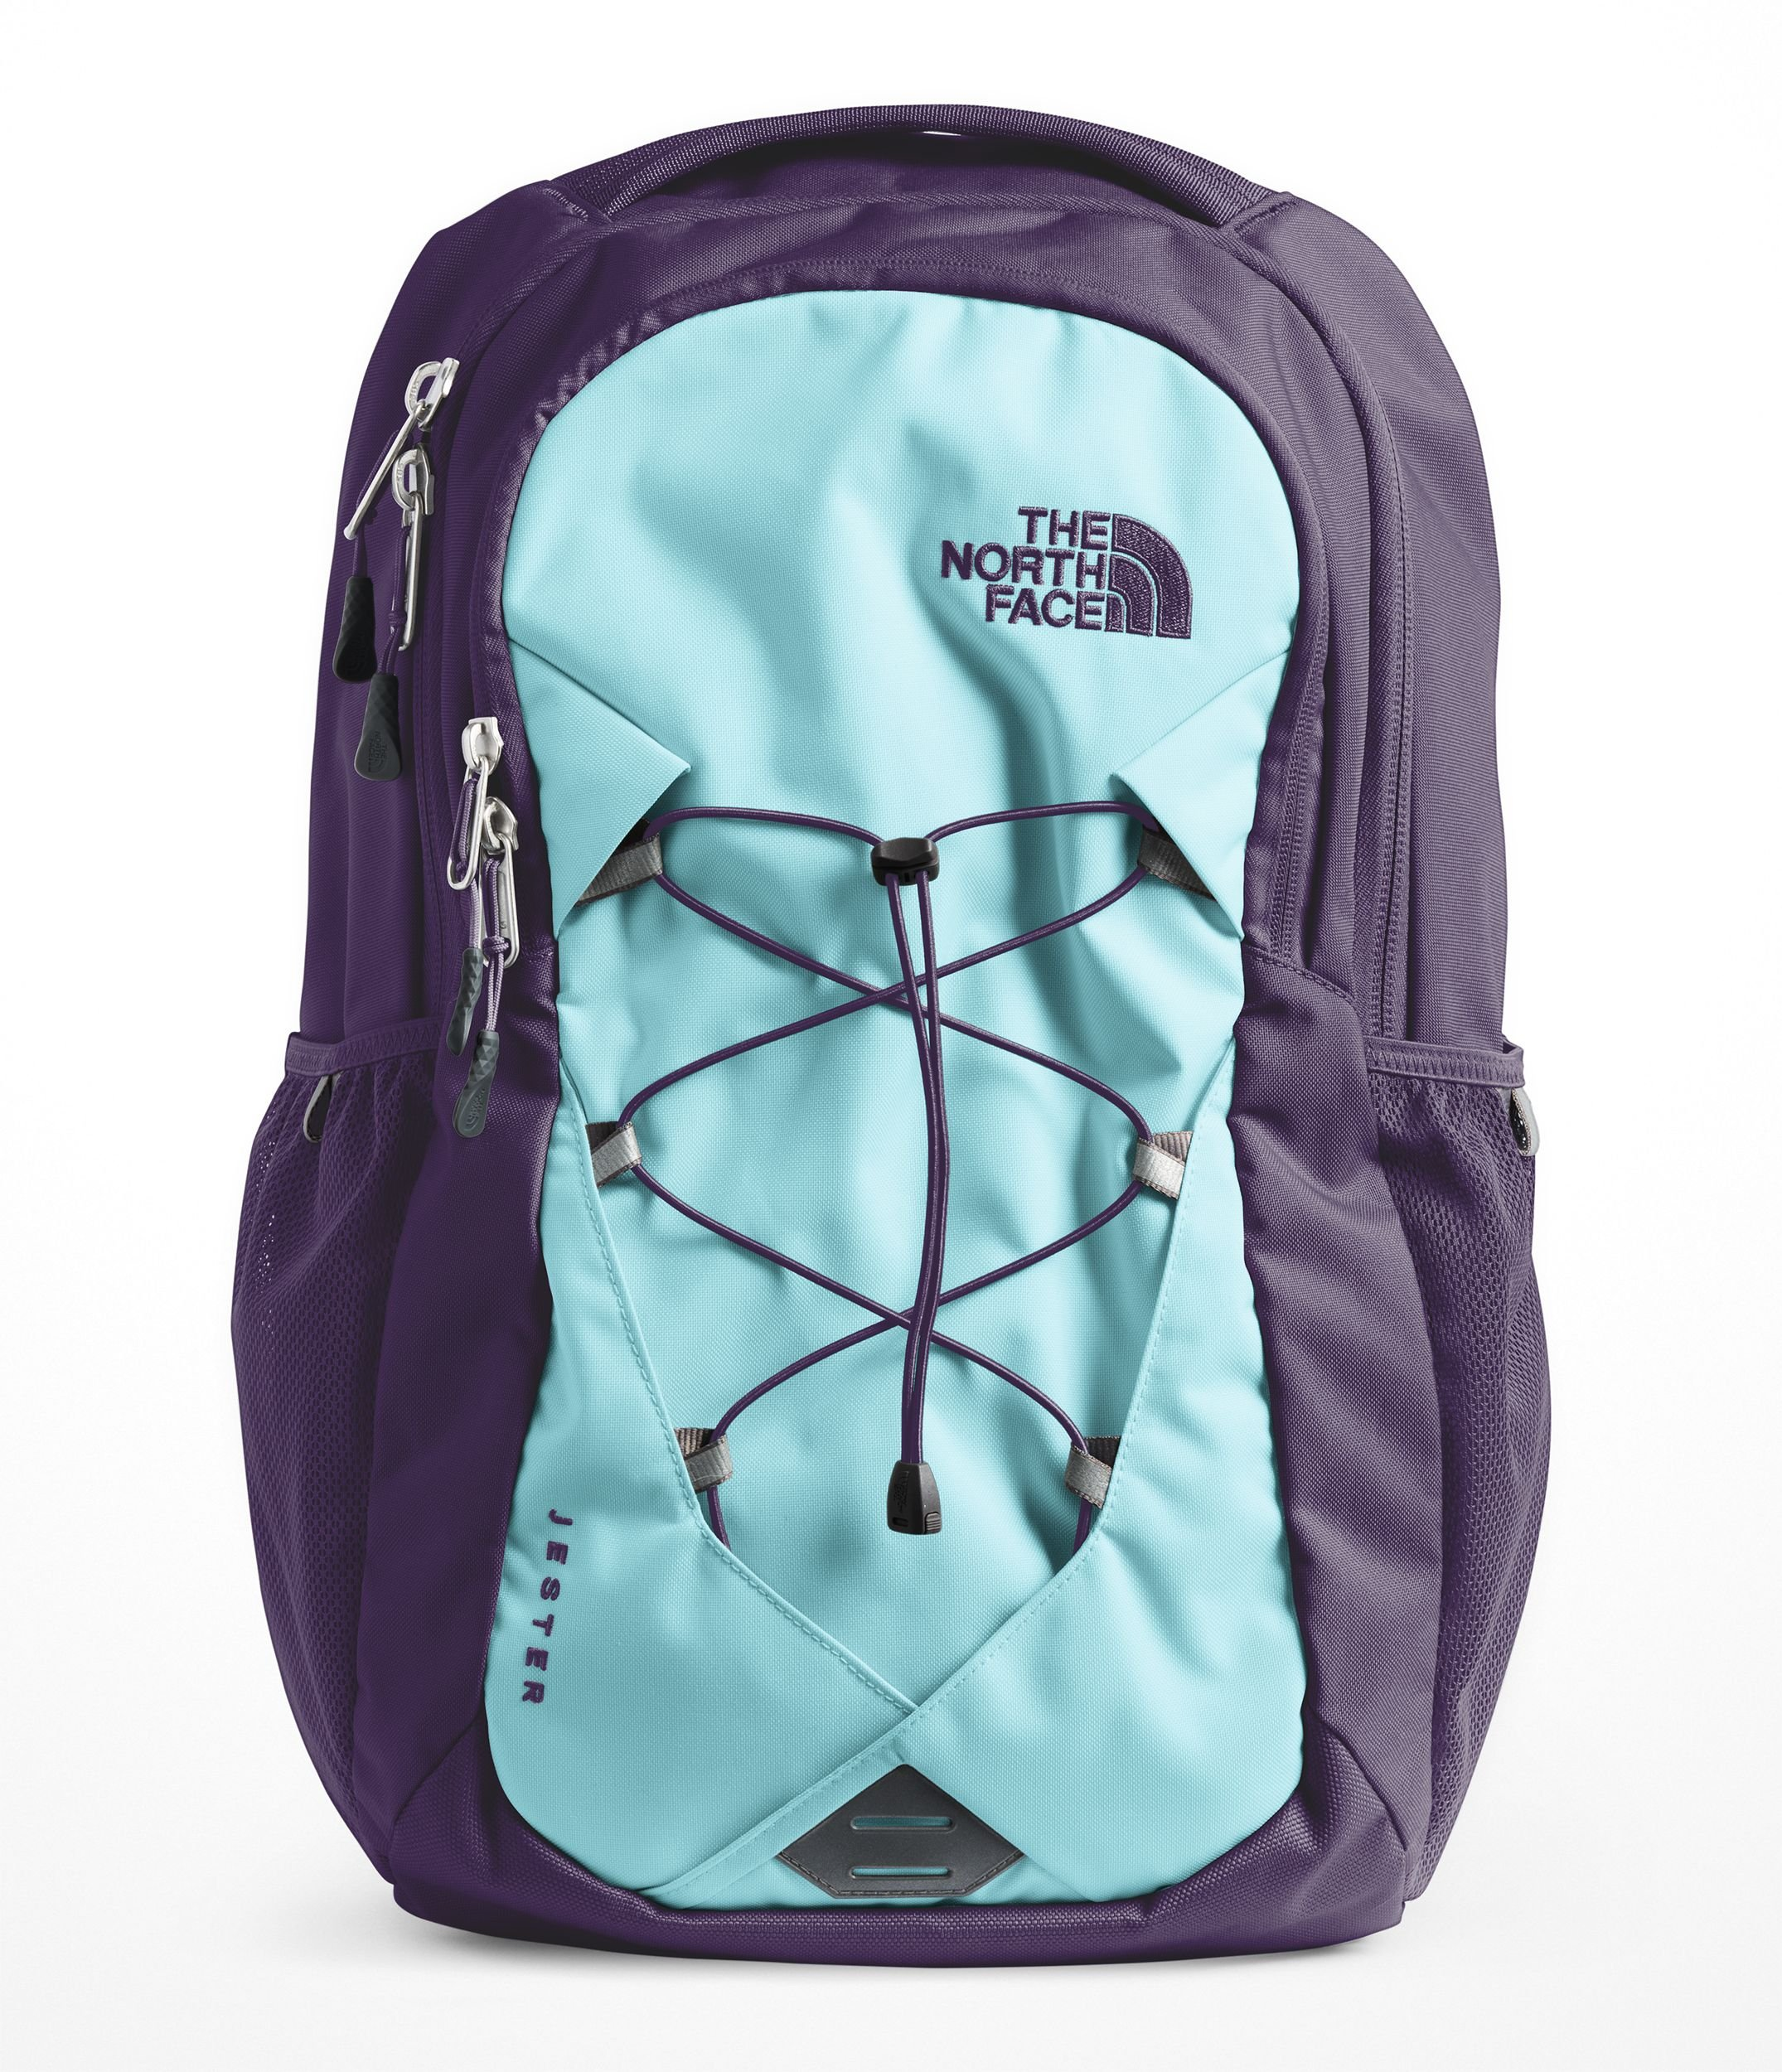 06d3e04cc Galleon - The North Face Women's Jester Laptop Backpack (Mint Blue ...